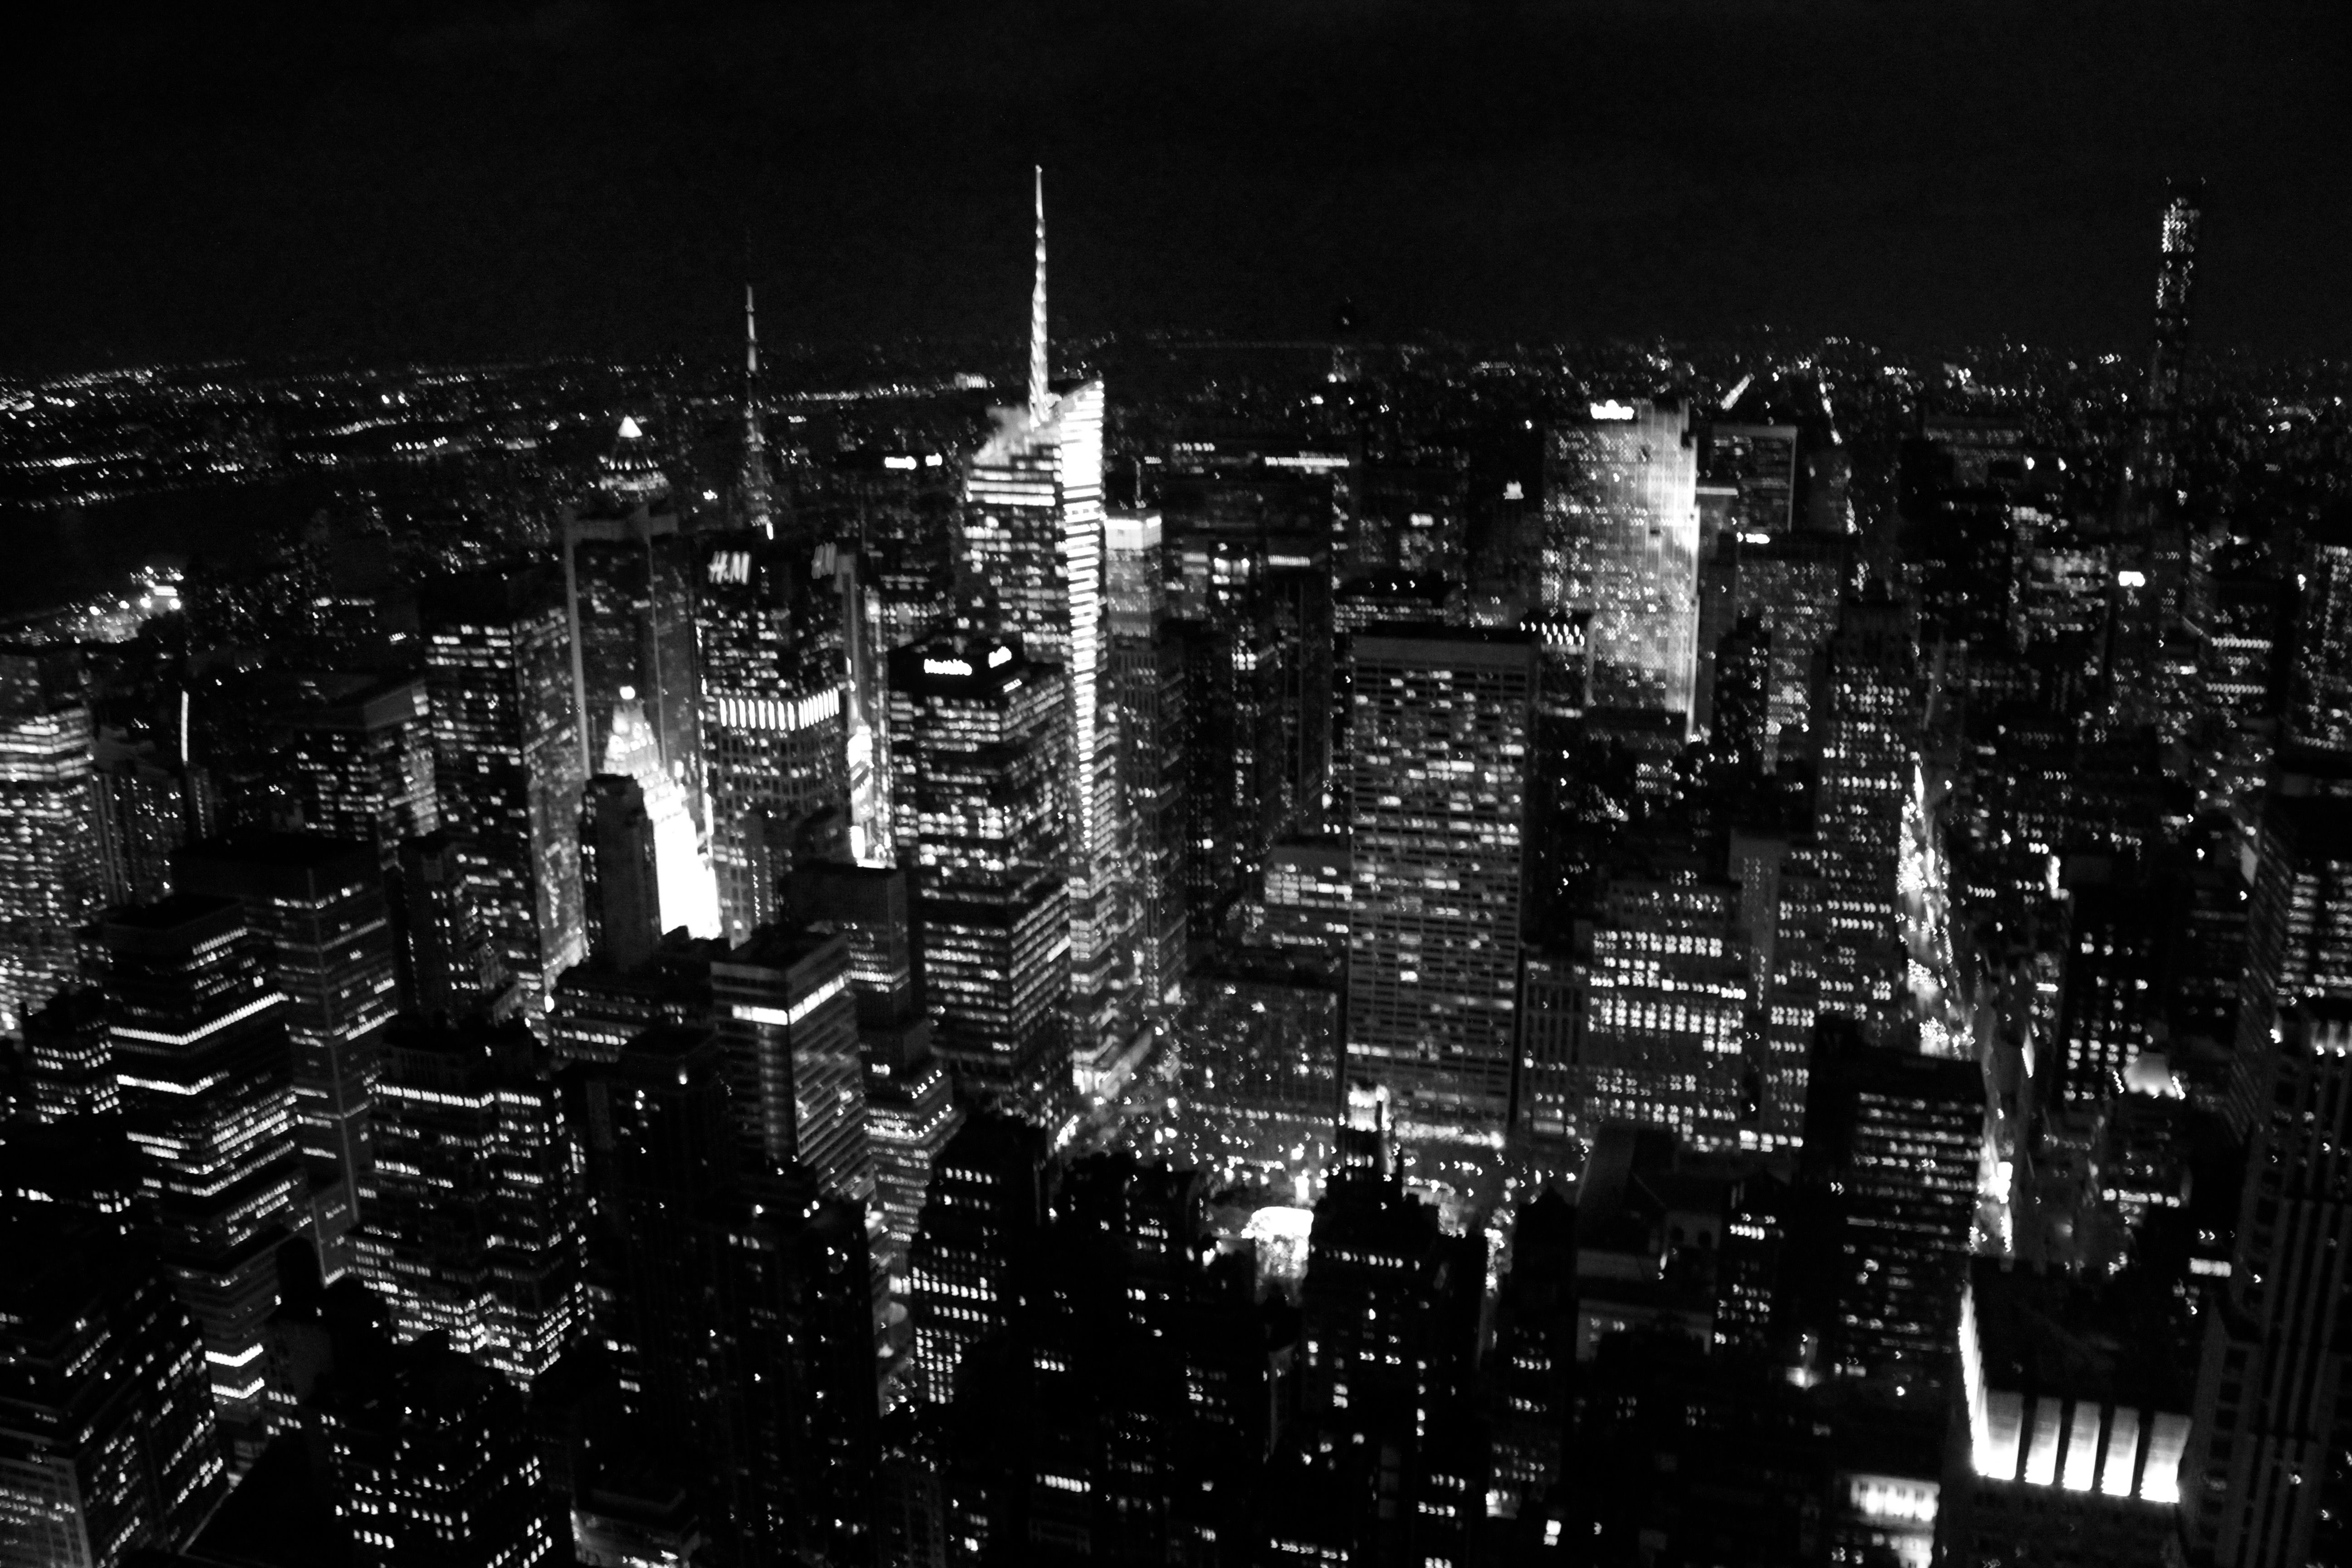 New York City in December 2000 for school This was the view I got